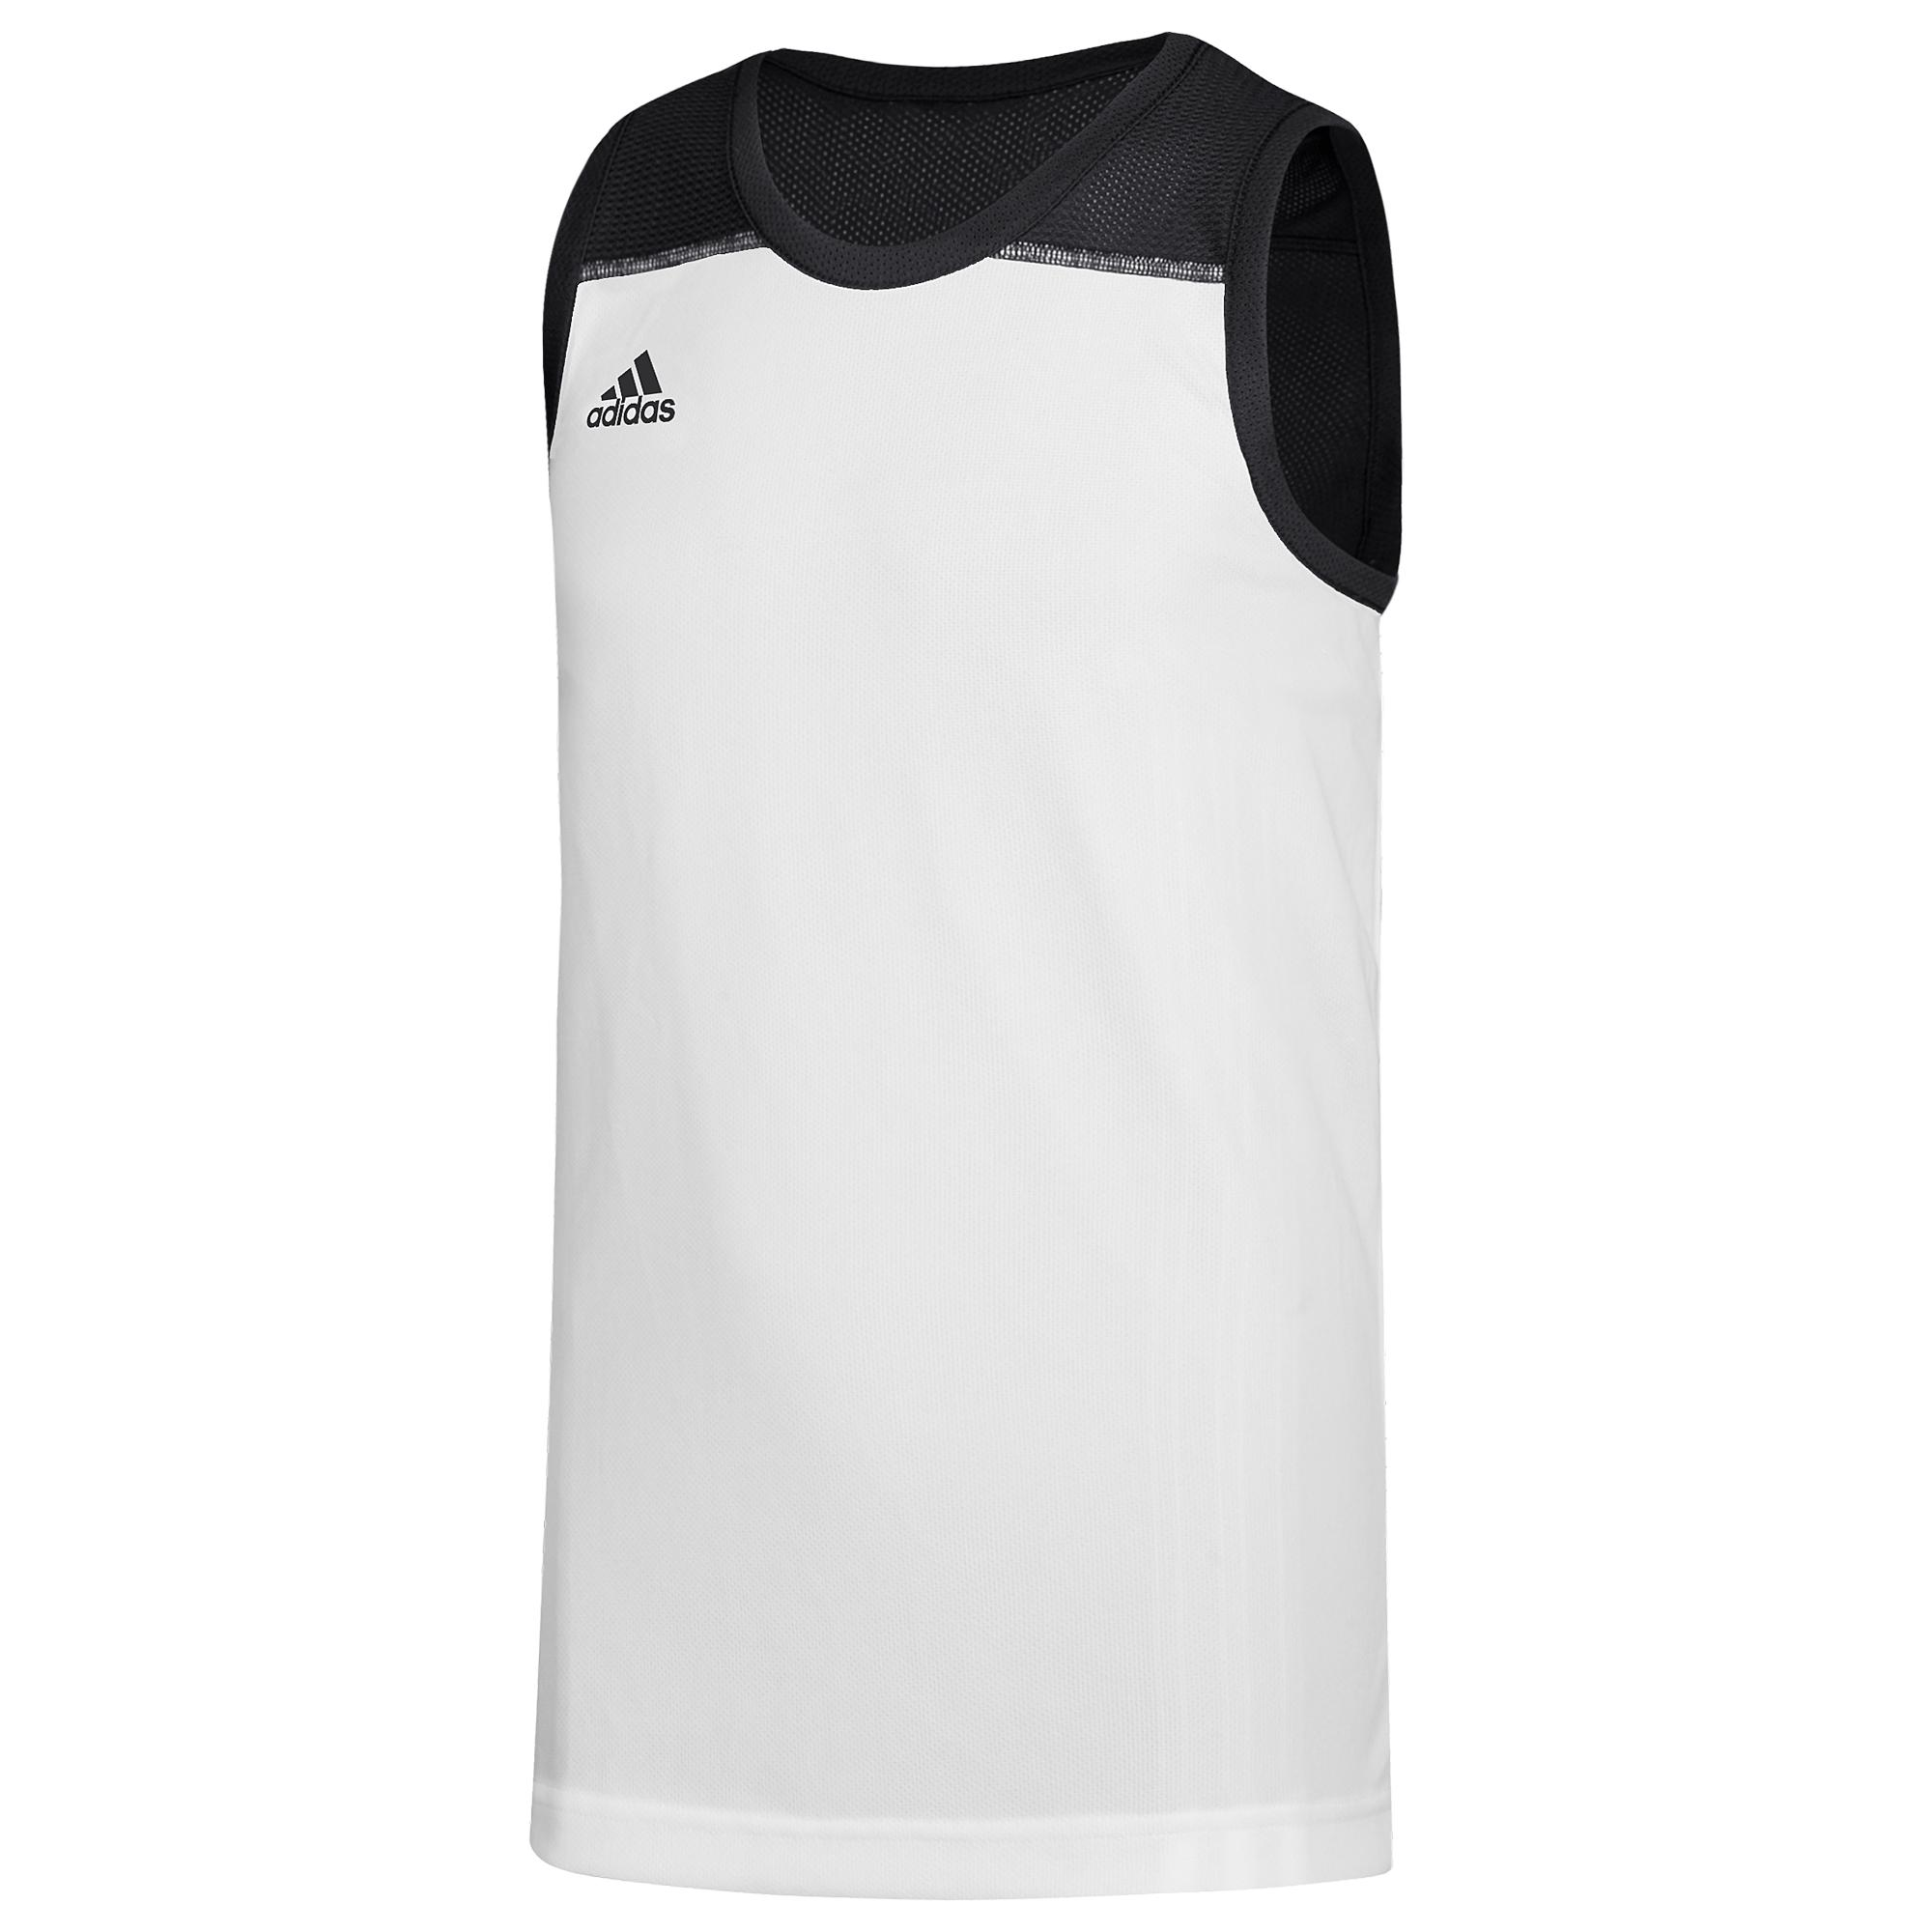 adidas Synthetic Team 3g Speed Reversible Jersey in Black/White ...